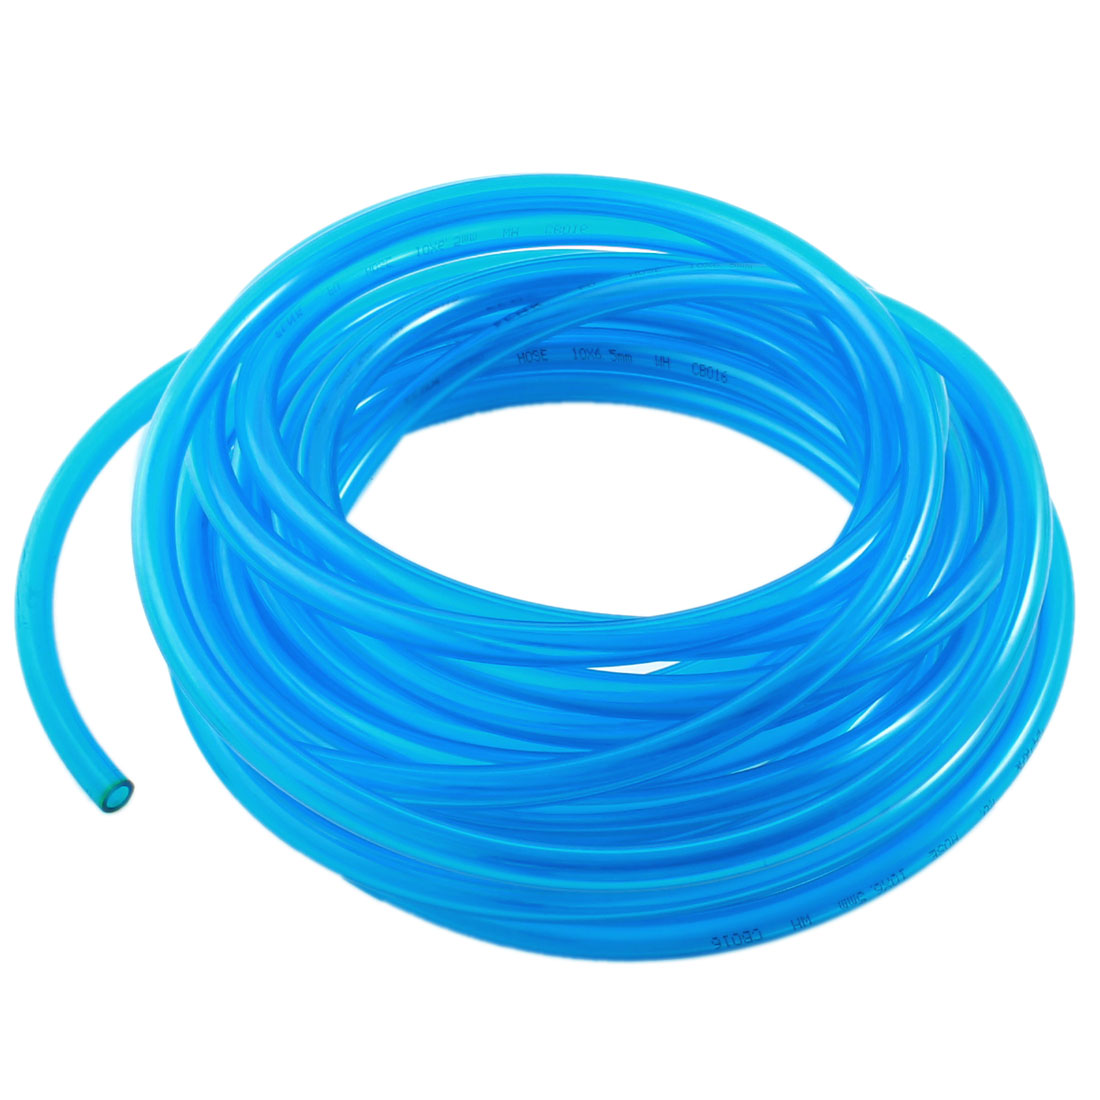 Pneumatic 6.5x10mm Air Gas Quick Fittings Connection PU Tube 10Meter Clear Blue